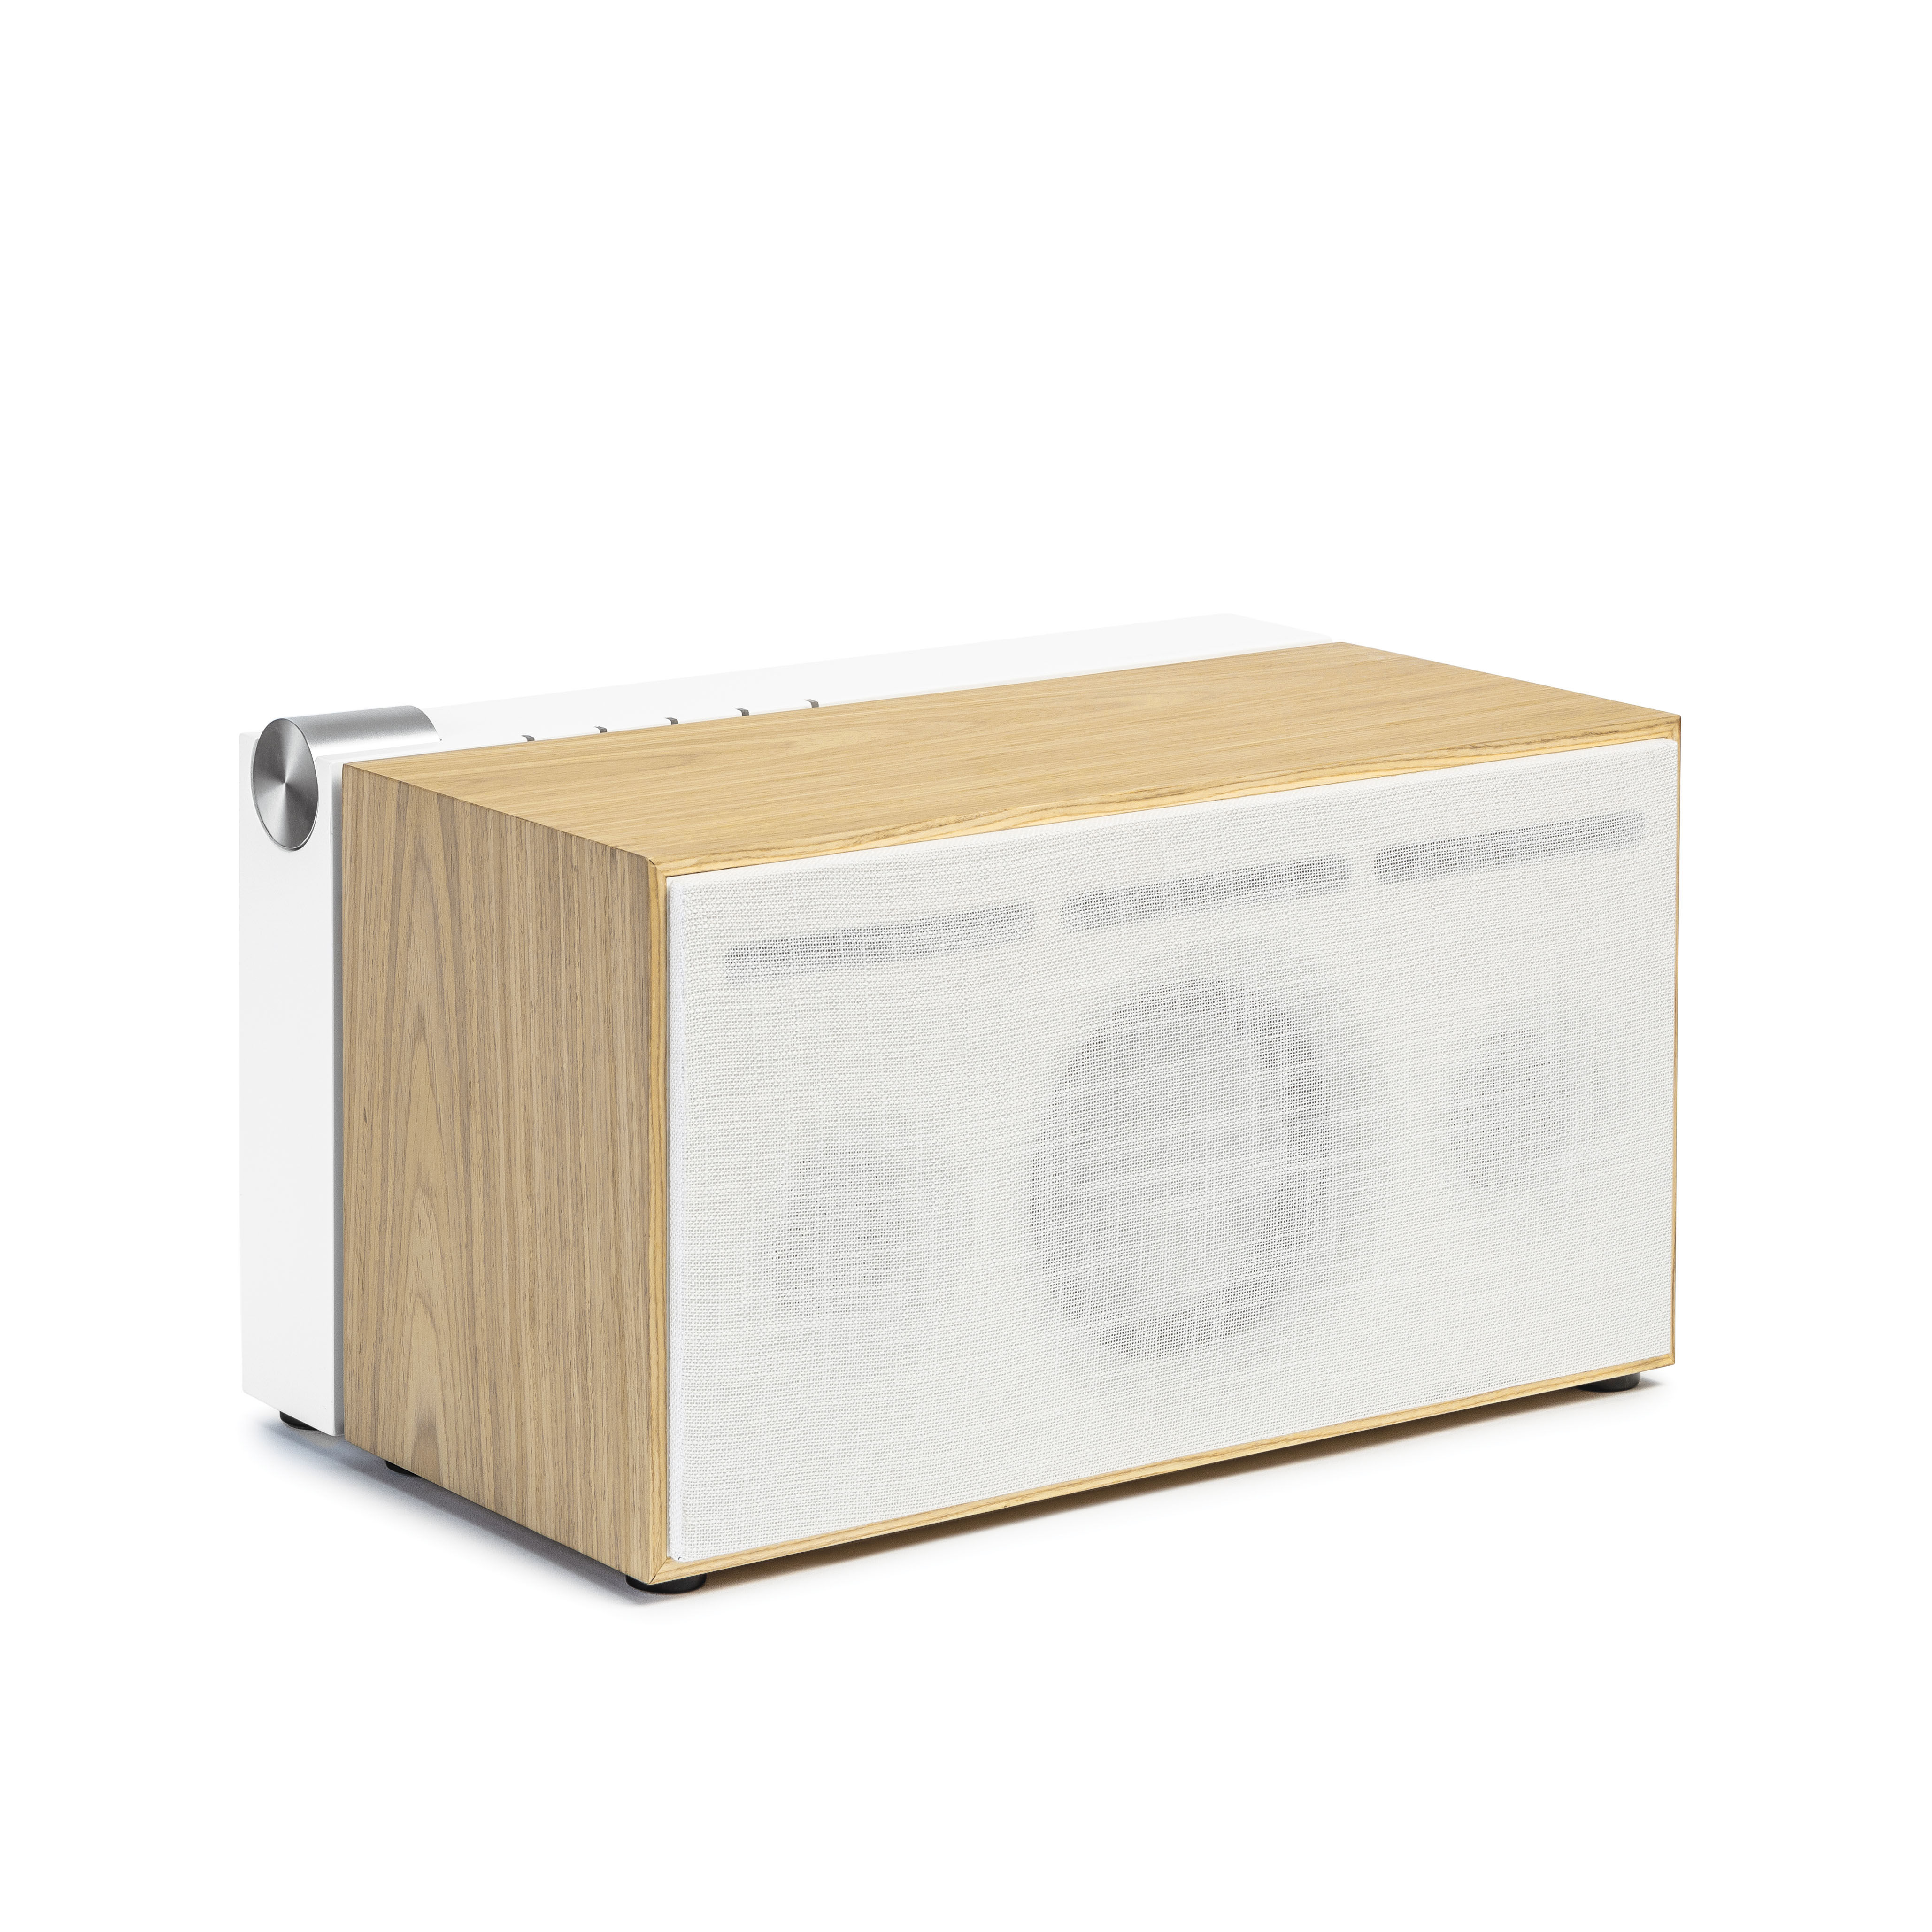 Accessories - Speakers & Audio - PR 01 Bluetooth speaker - / With Active Pressure Reflex technology by La Boîte Concept - White & oak - Aluminium, Fabric, Solid oak